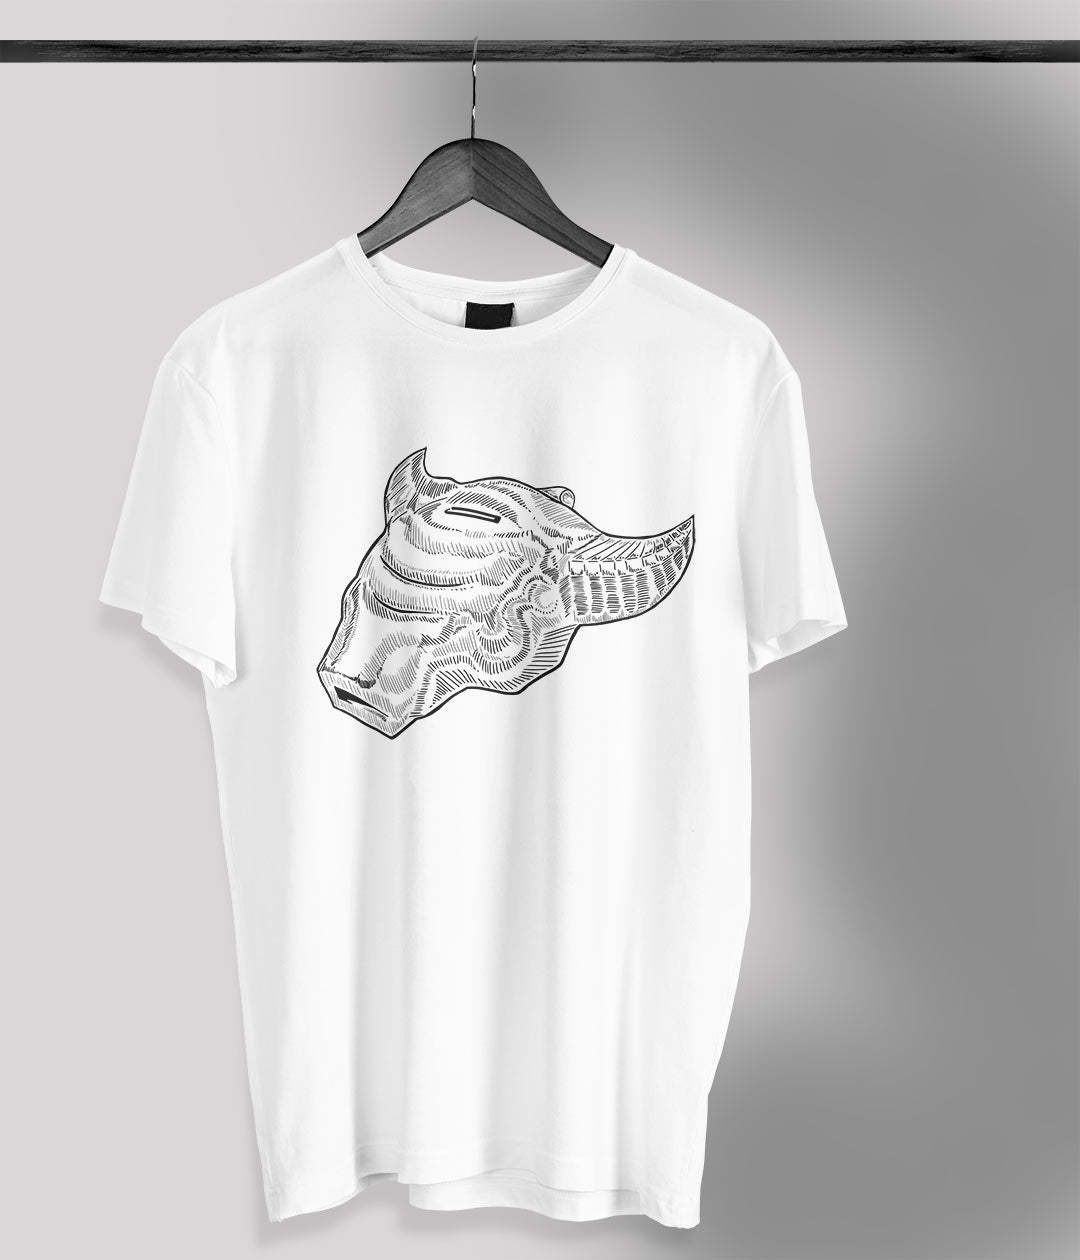 white t shirt with anime bull whistle printed in black